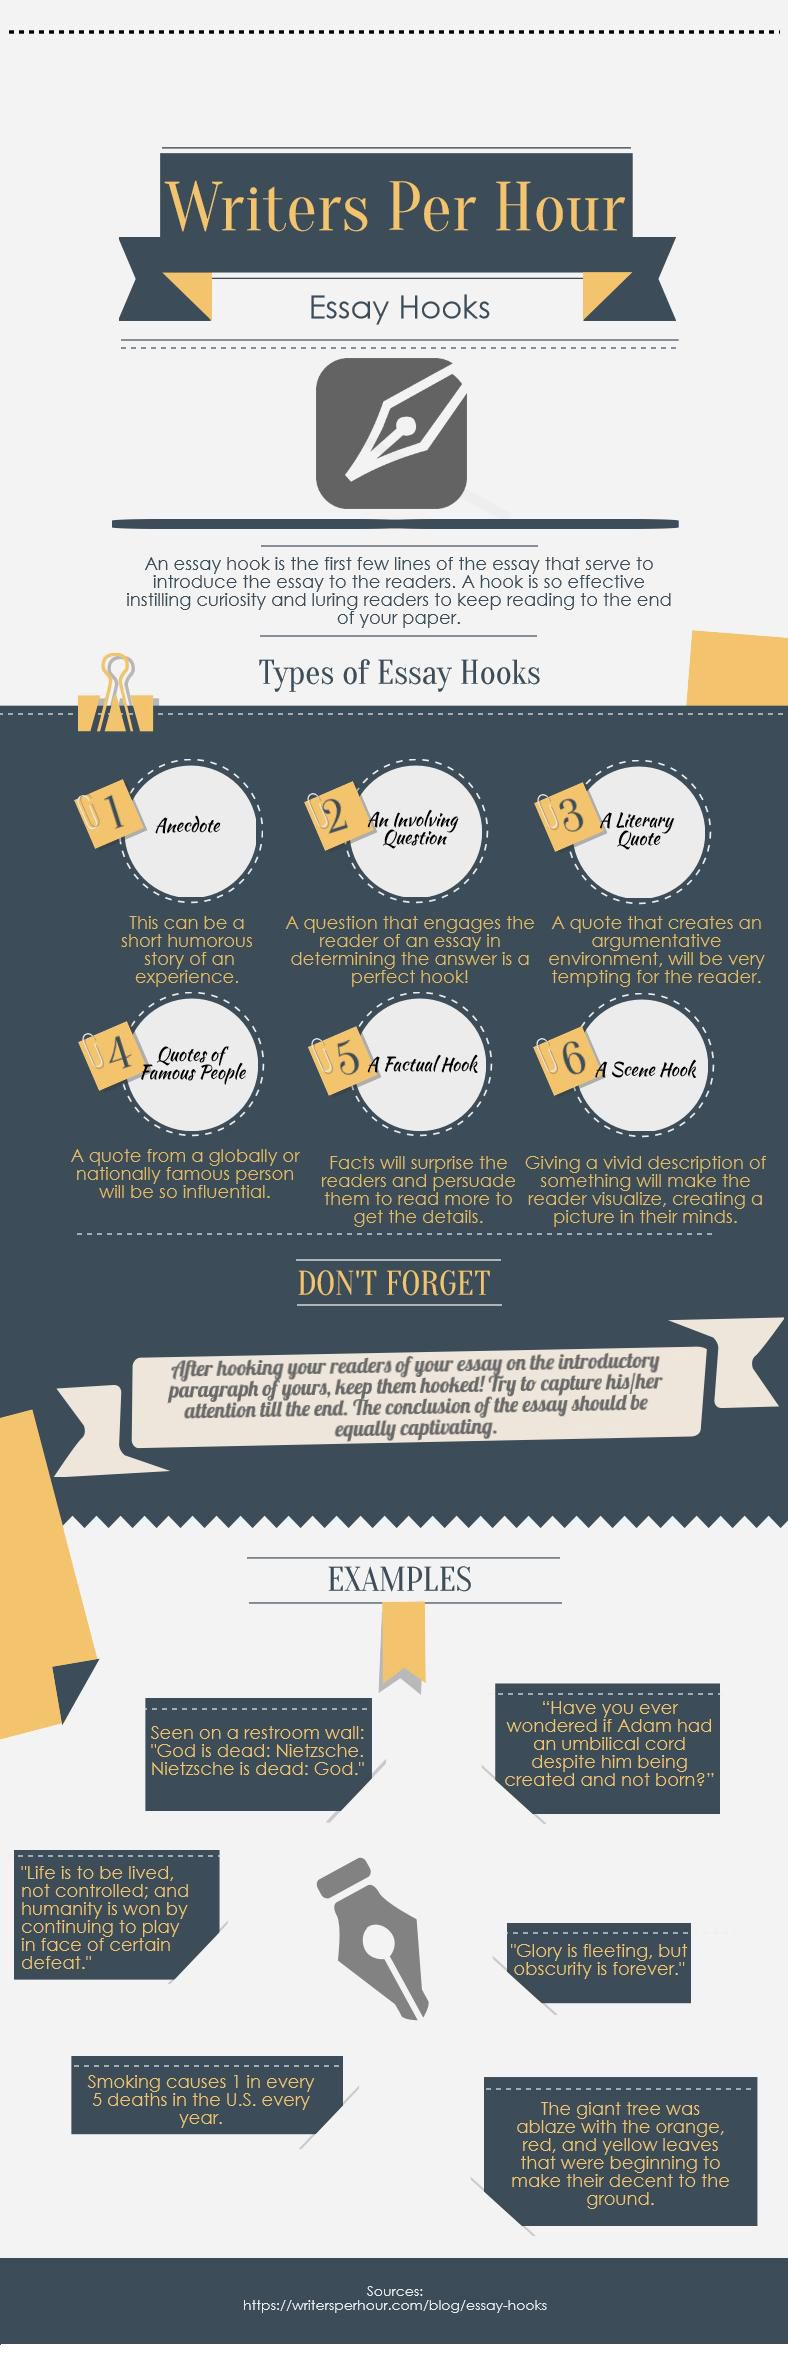 infographic on essay hooks be a better student education a nursing essay is an important step in getting your years of training and competence to contribute to your eventual success planning is an important step